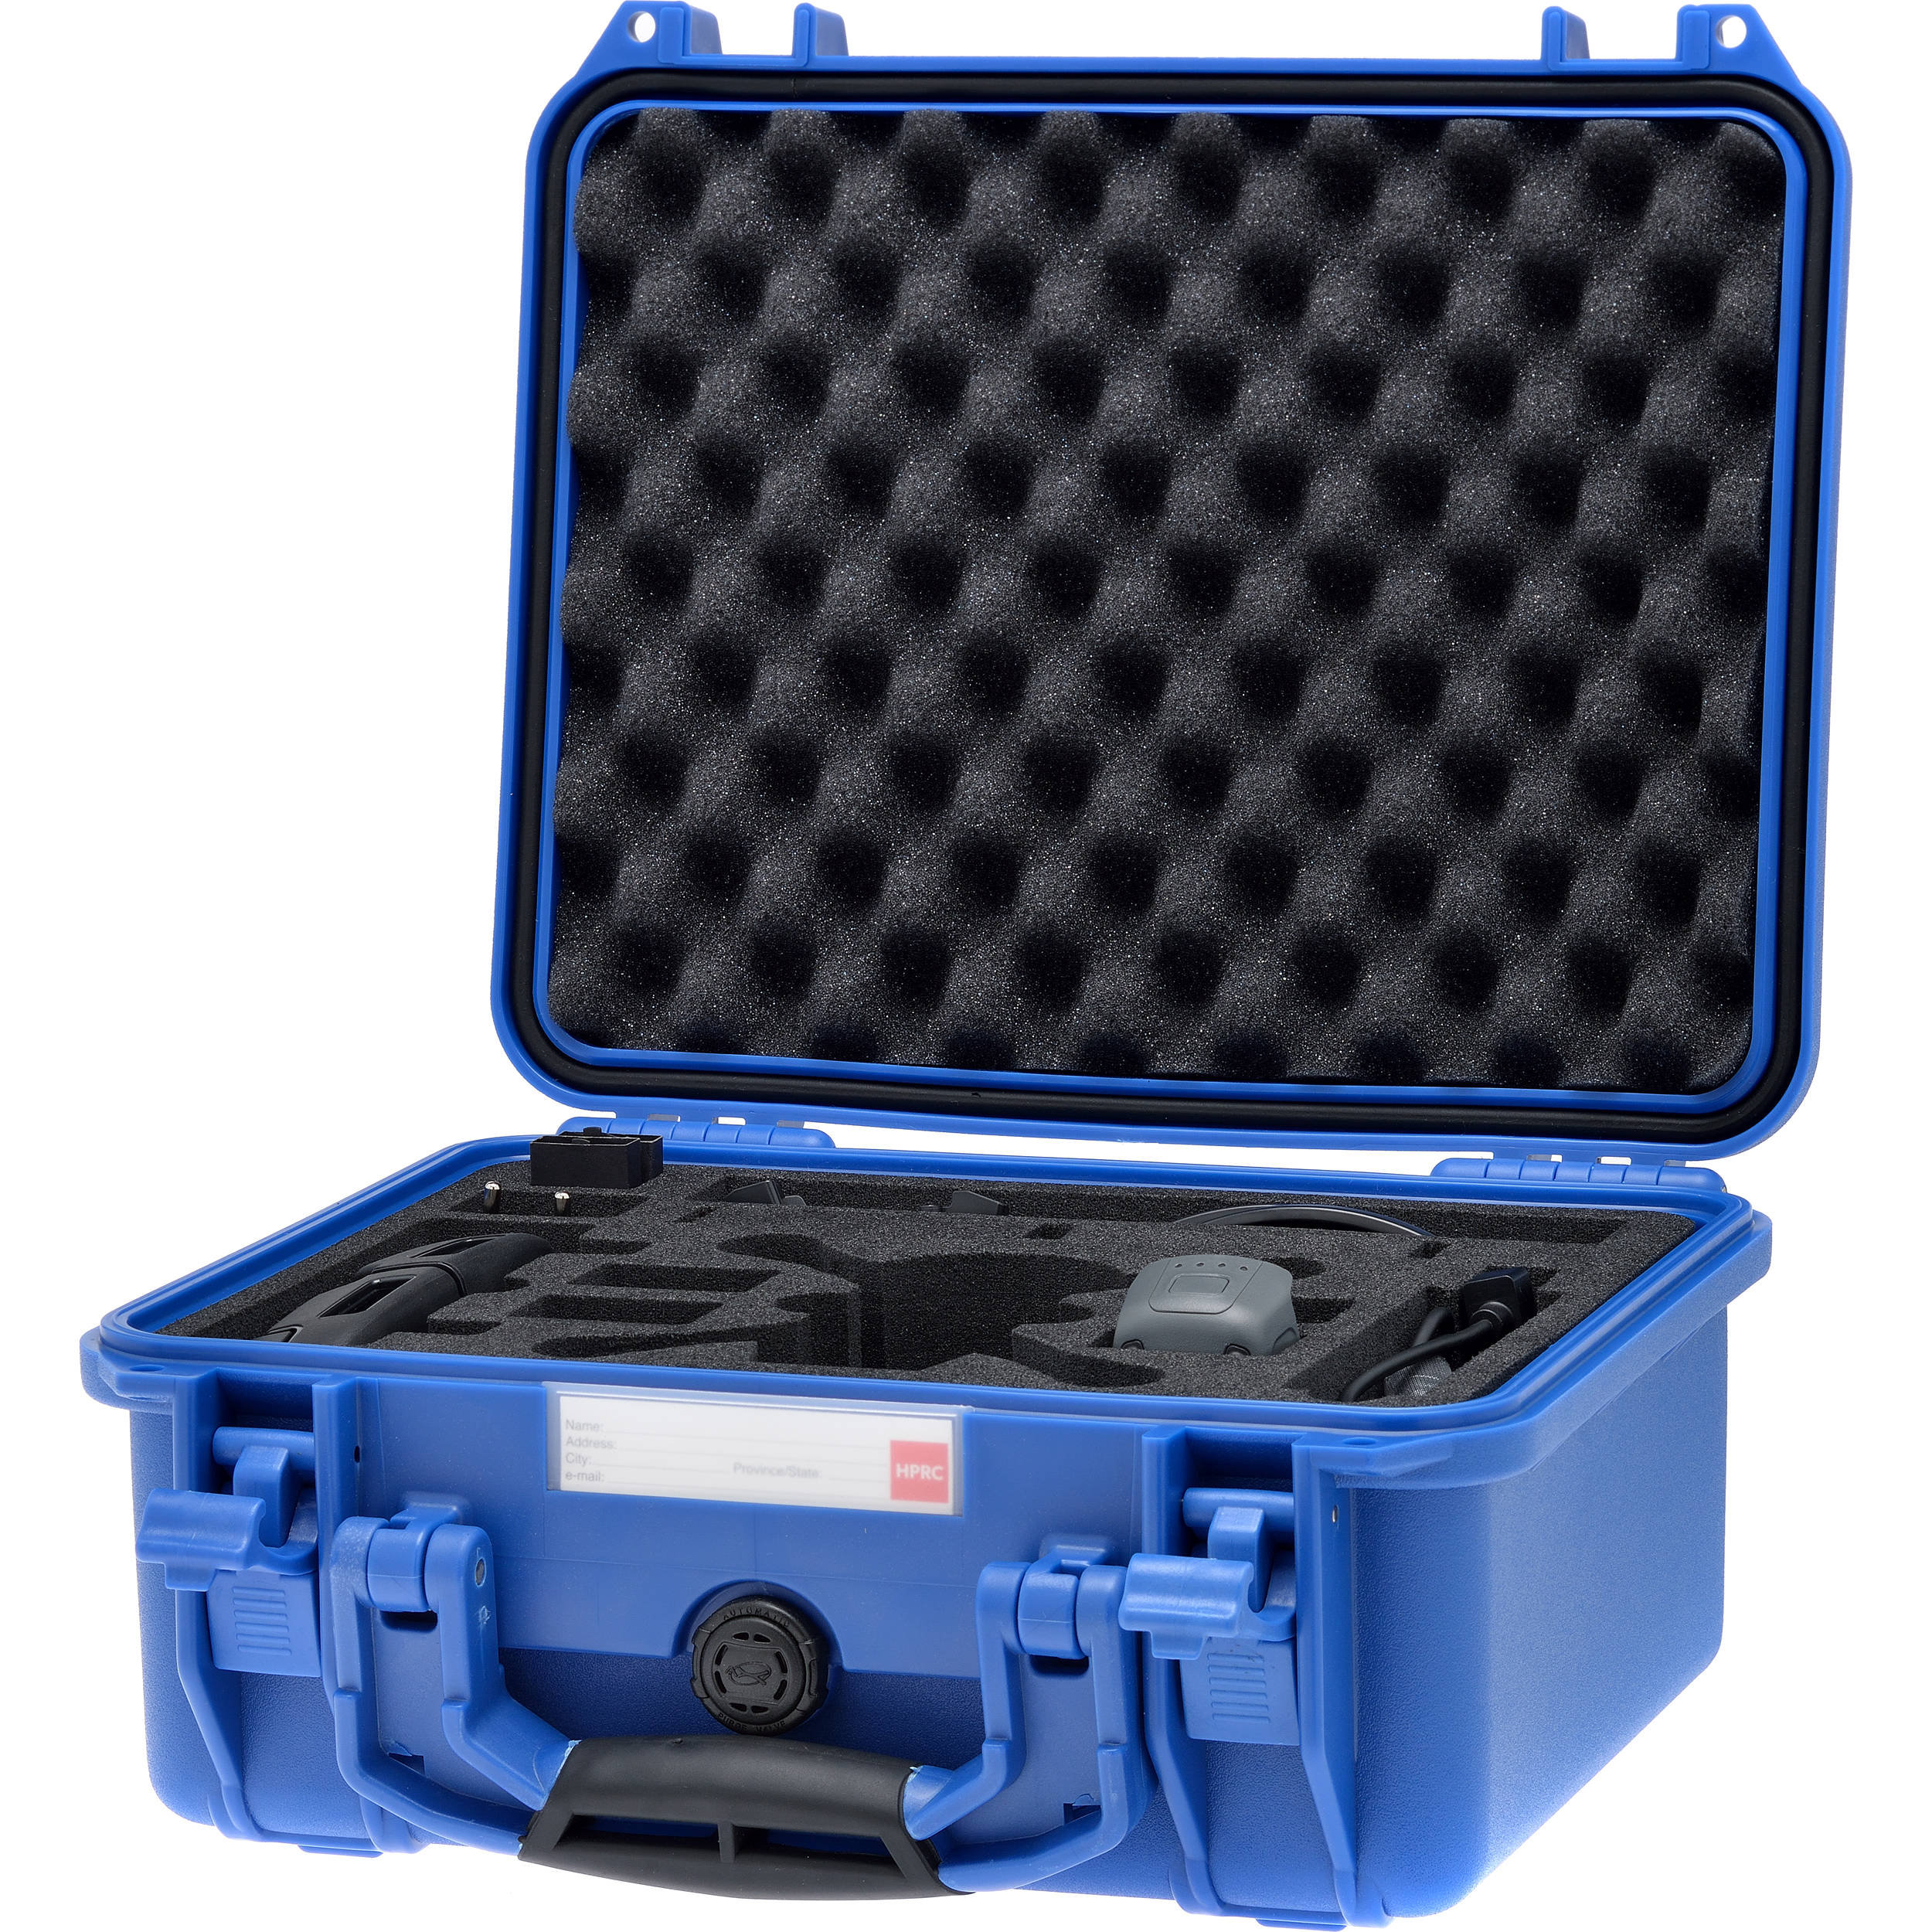 HPRC SPK2300 Hard-Shell Case for DJI Spark Fly More Combo (Electric Blue) 0311b2fcea77